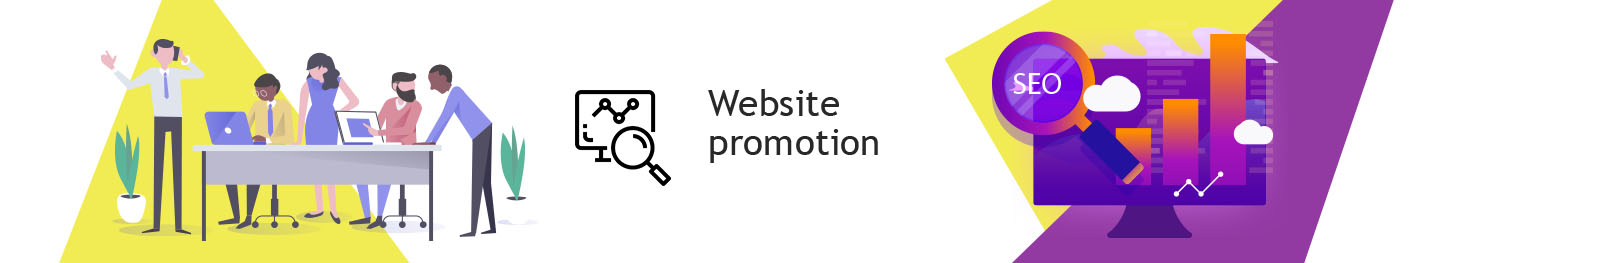 Order website promotion. Effective promotion of sites to order.